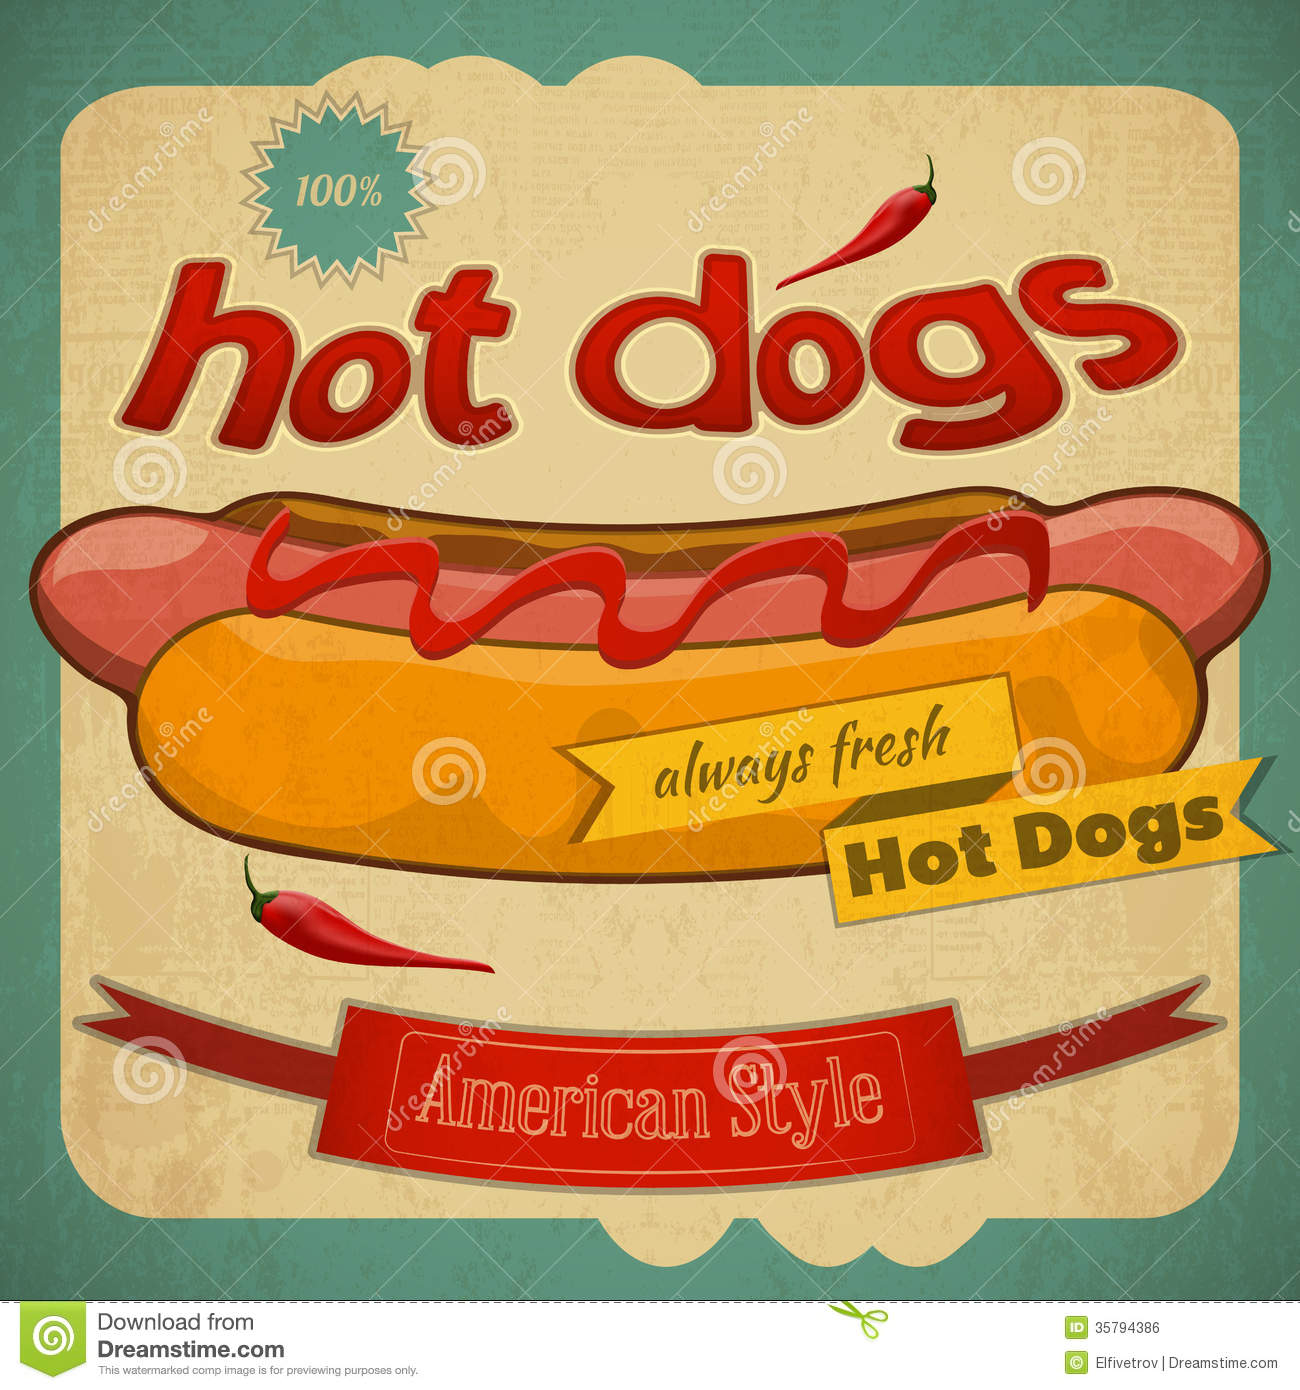 How To Eat Hot Dogs Fast